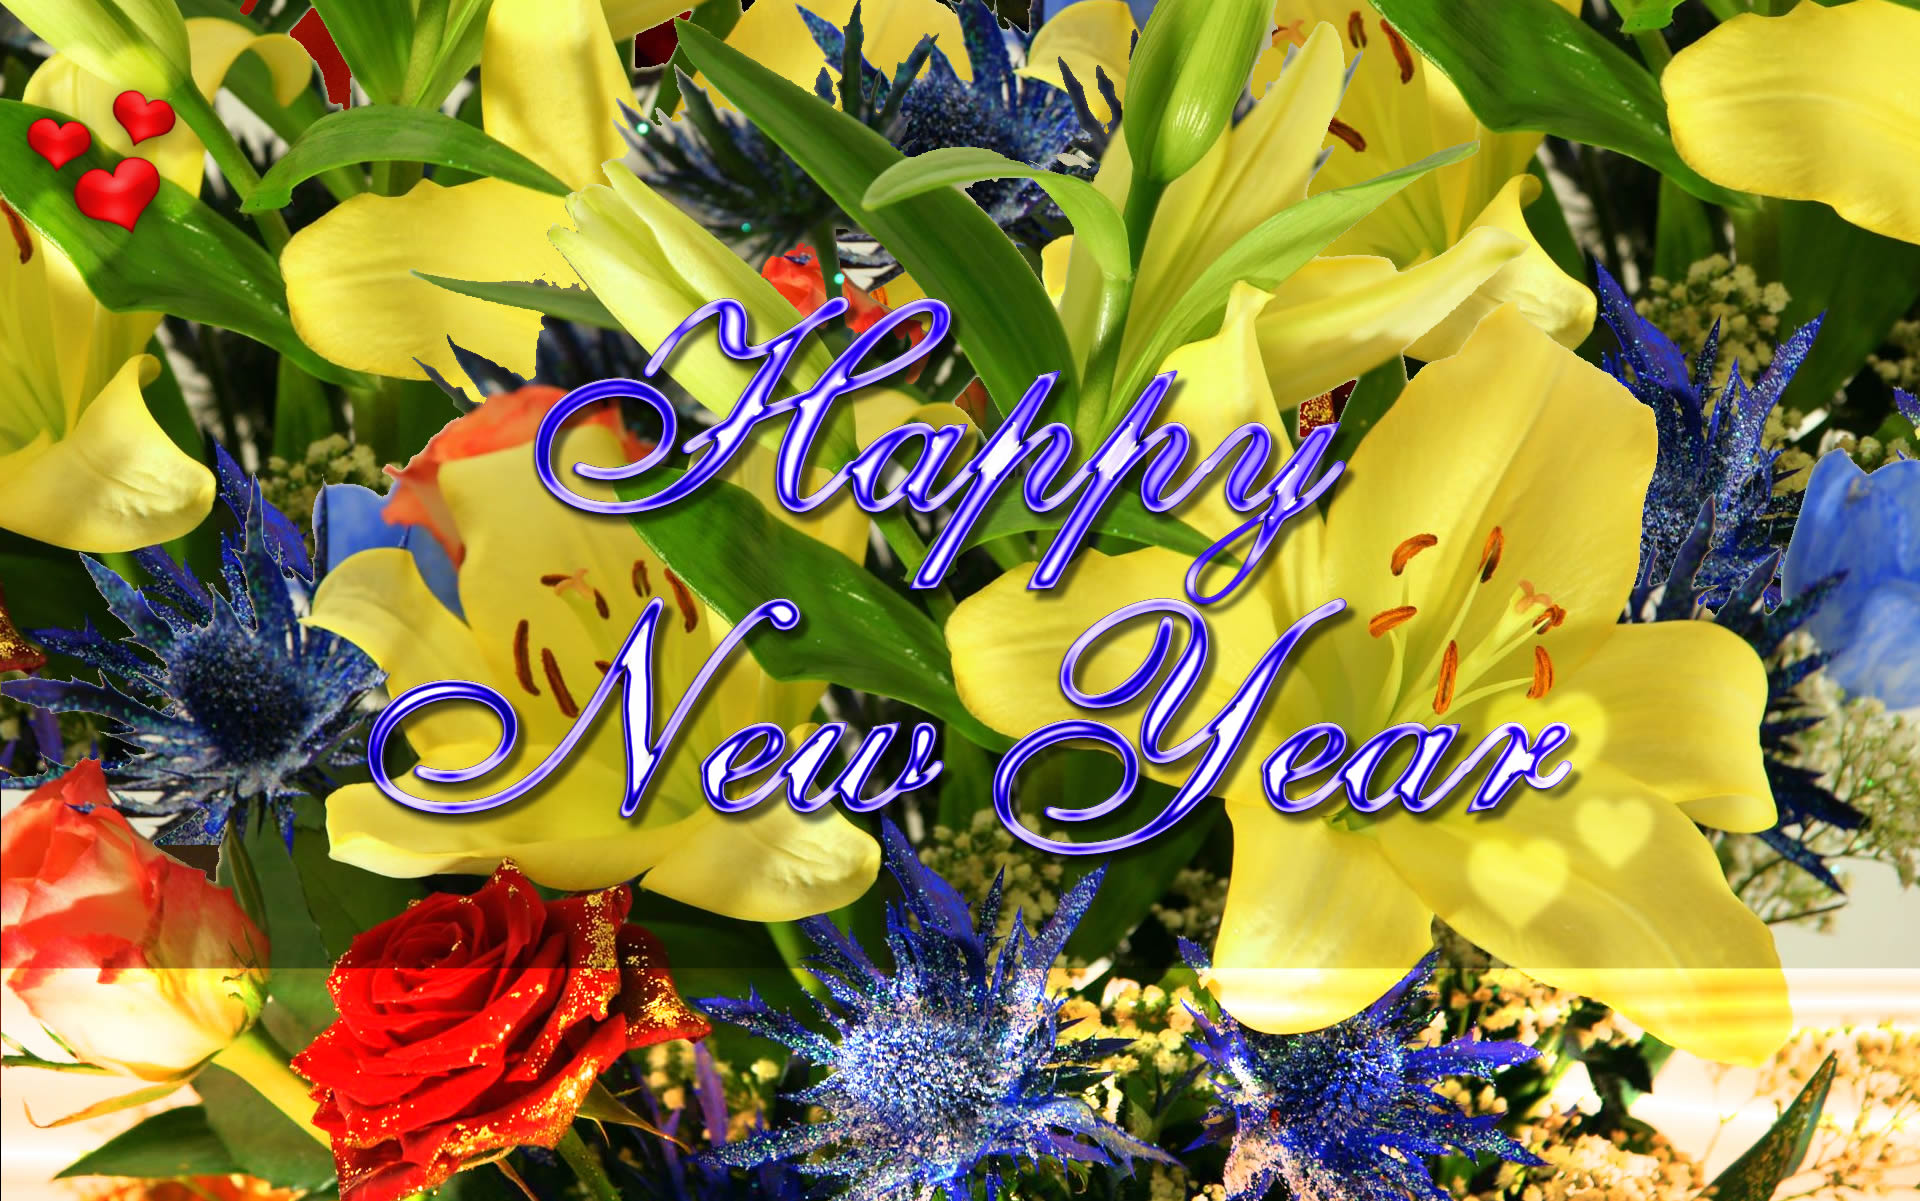 2012 Wallpaper Free Hd Animated New Year Wallpaper